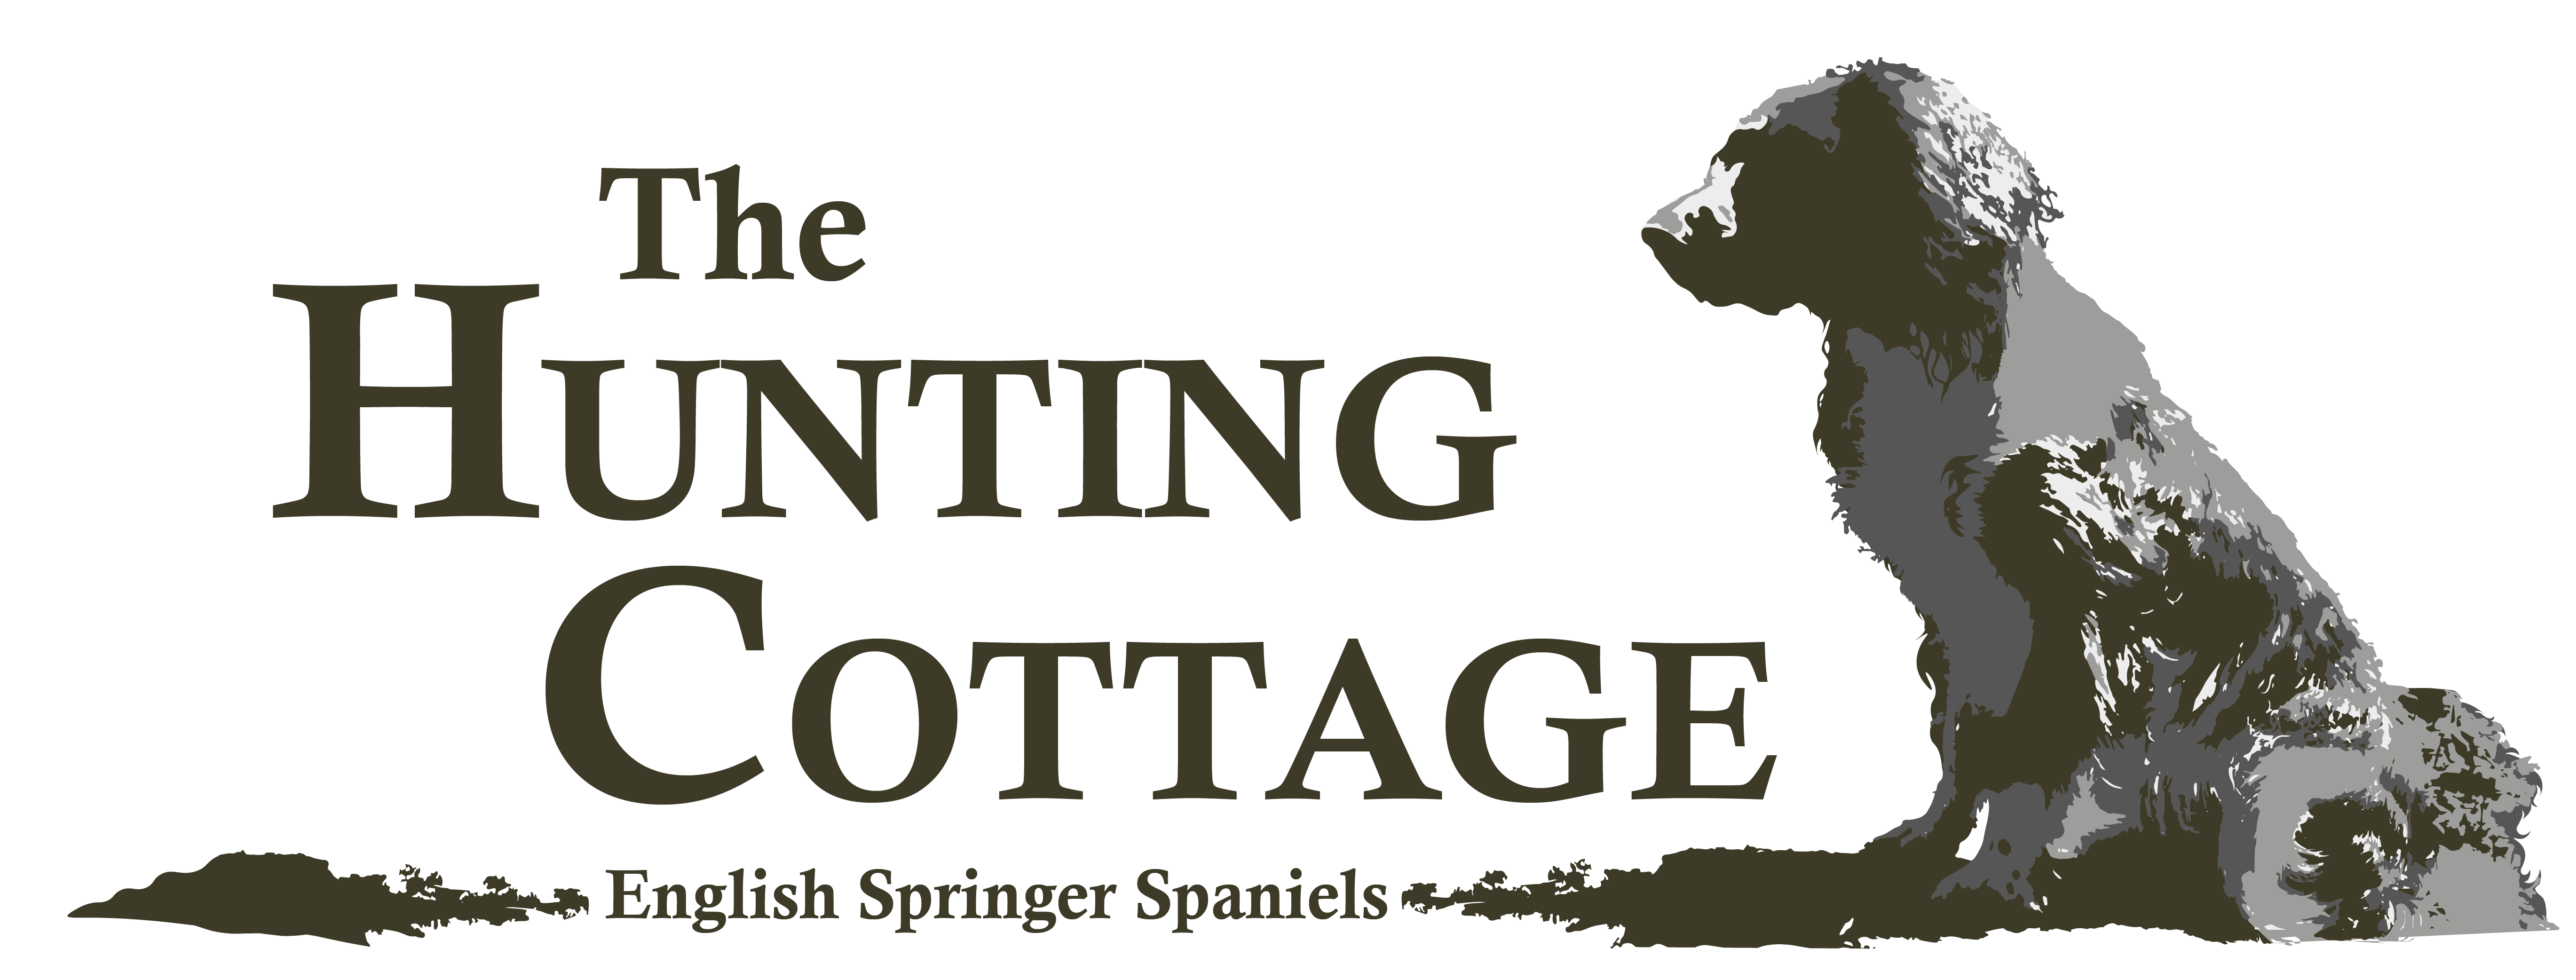 The Hunting Cottage